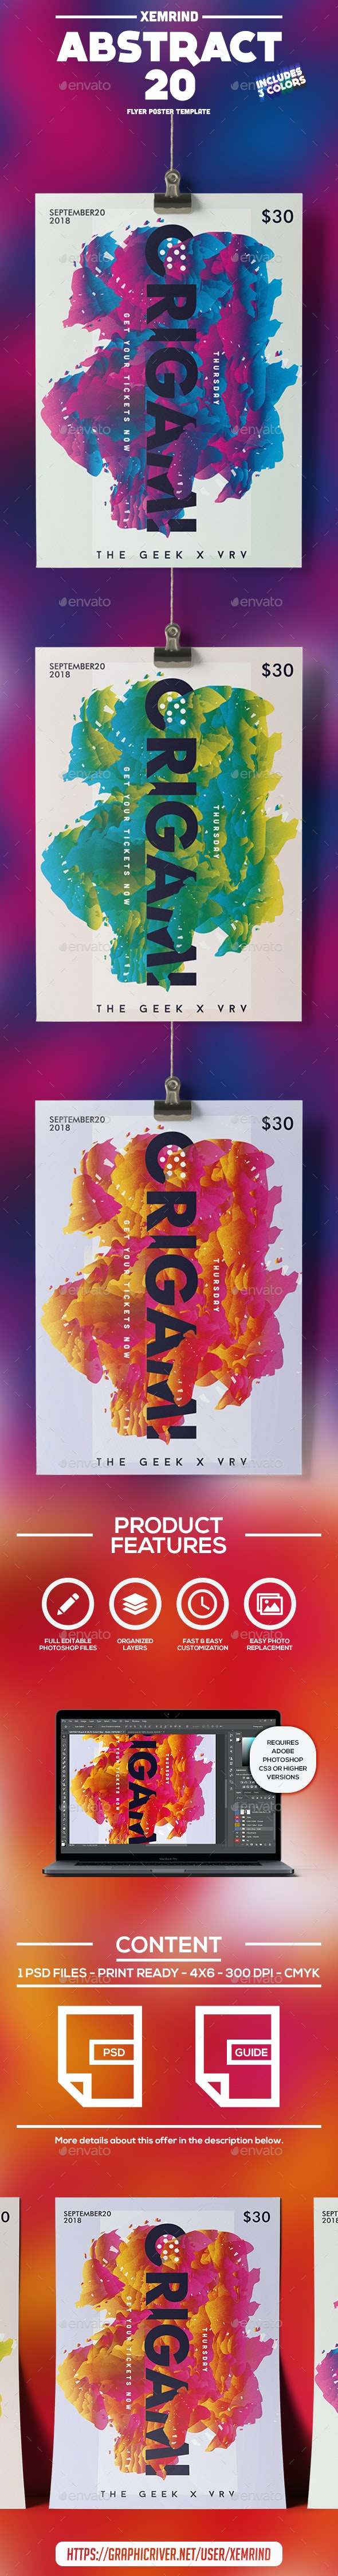 Abstract 20 Flyer/Poster Template - Events Flyers